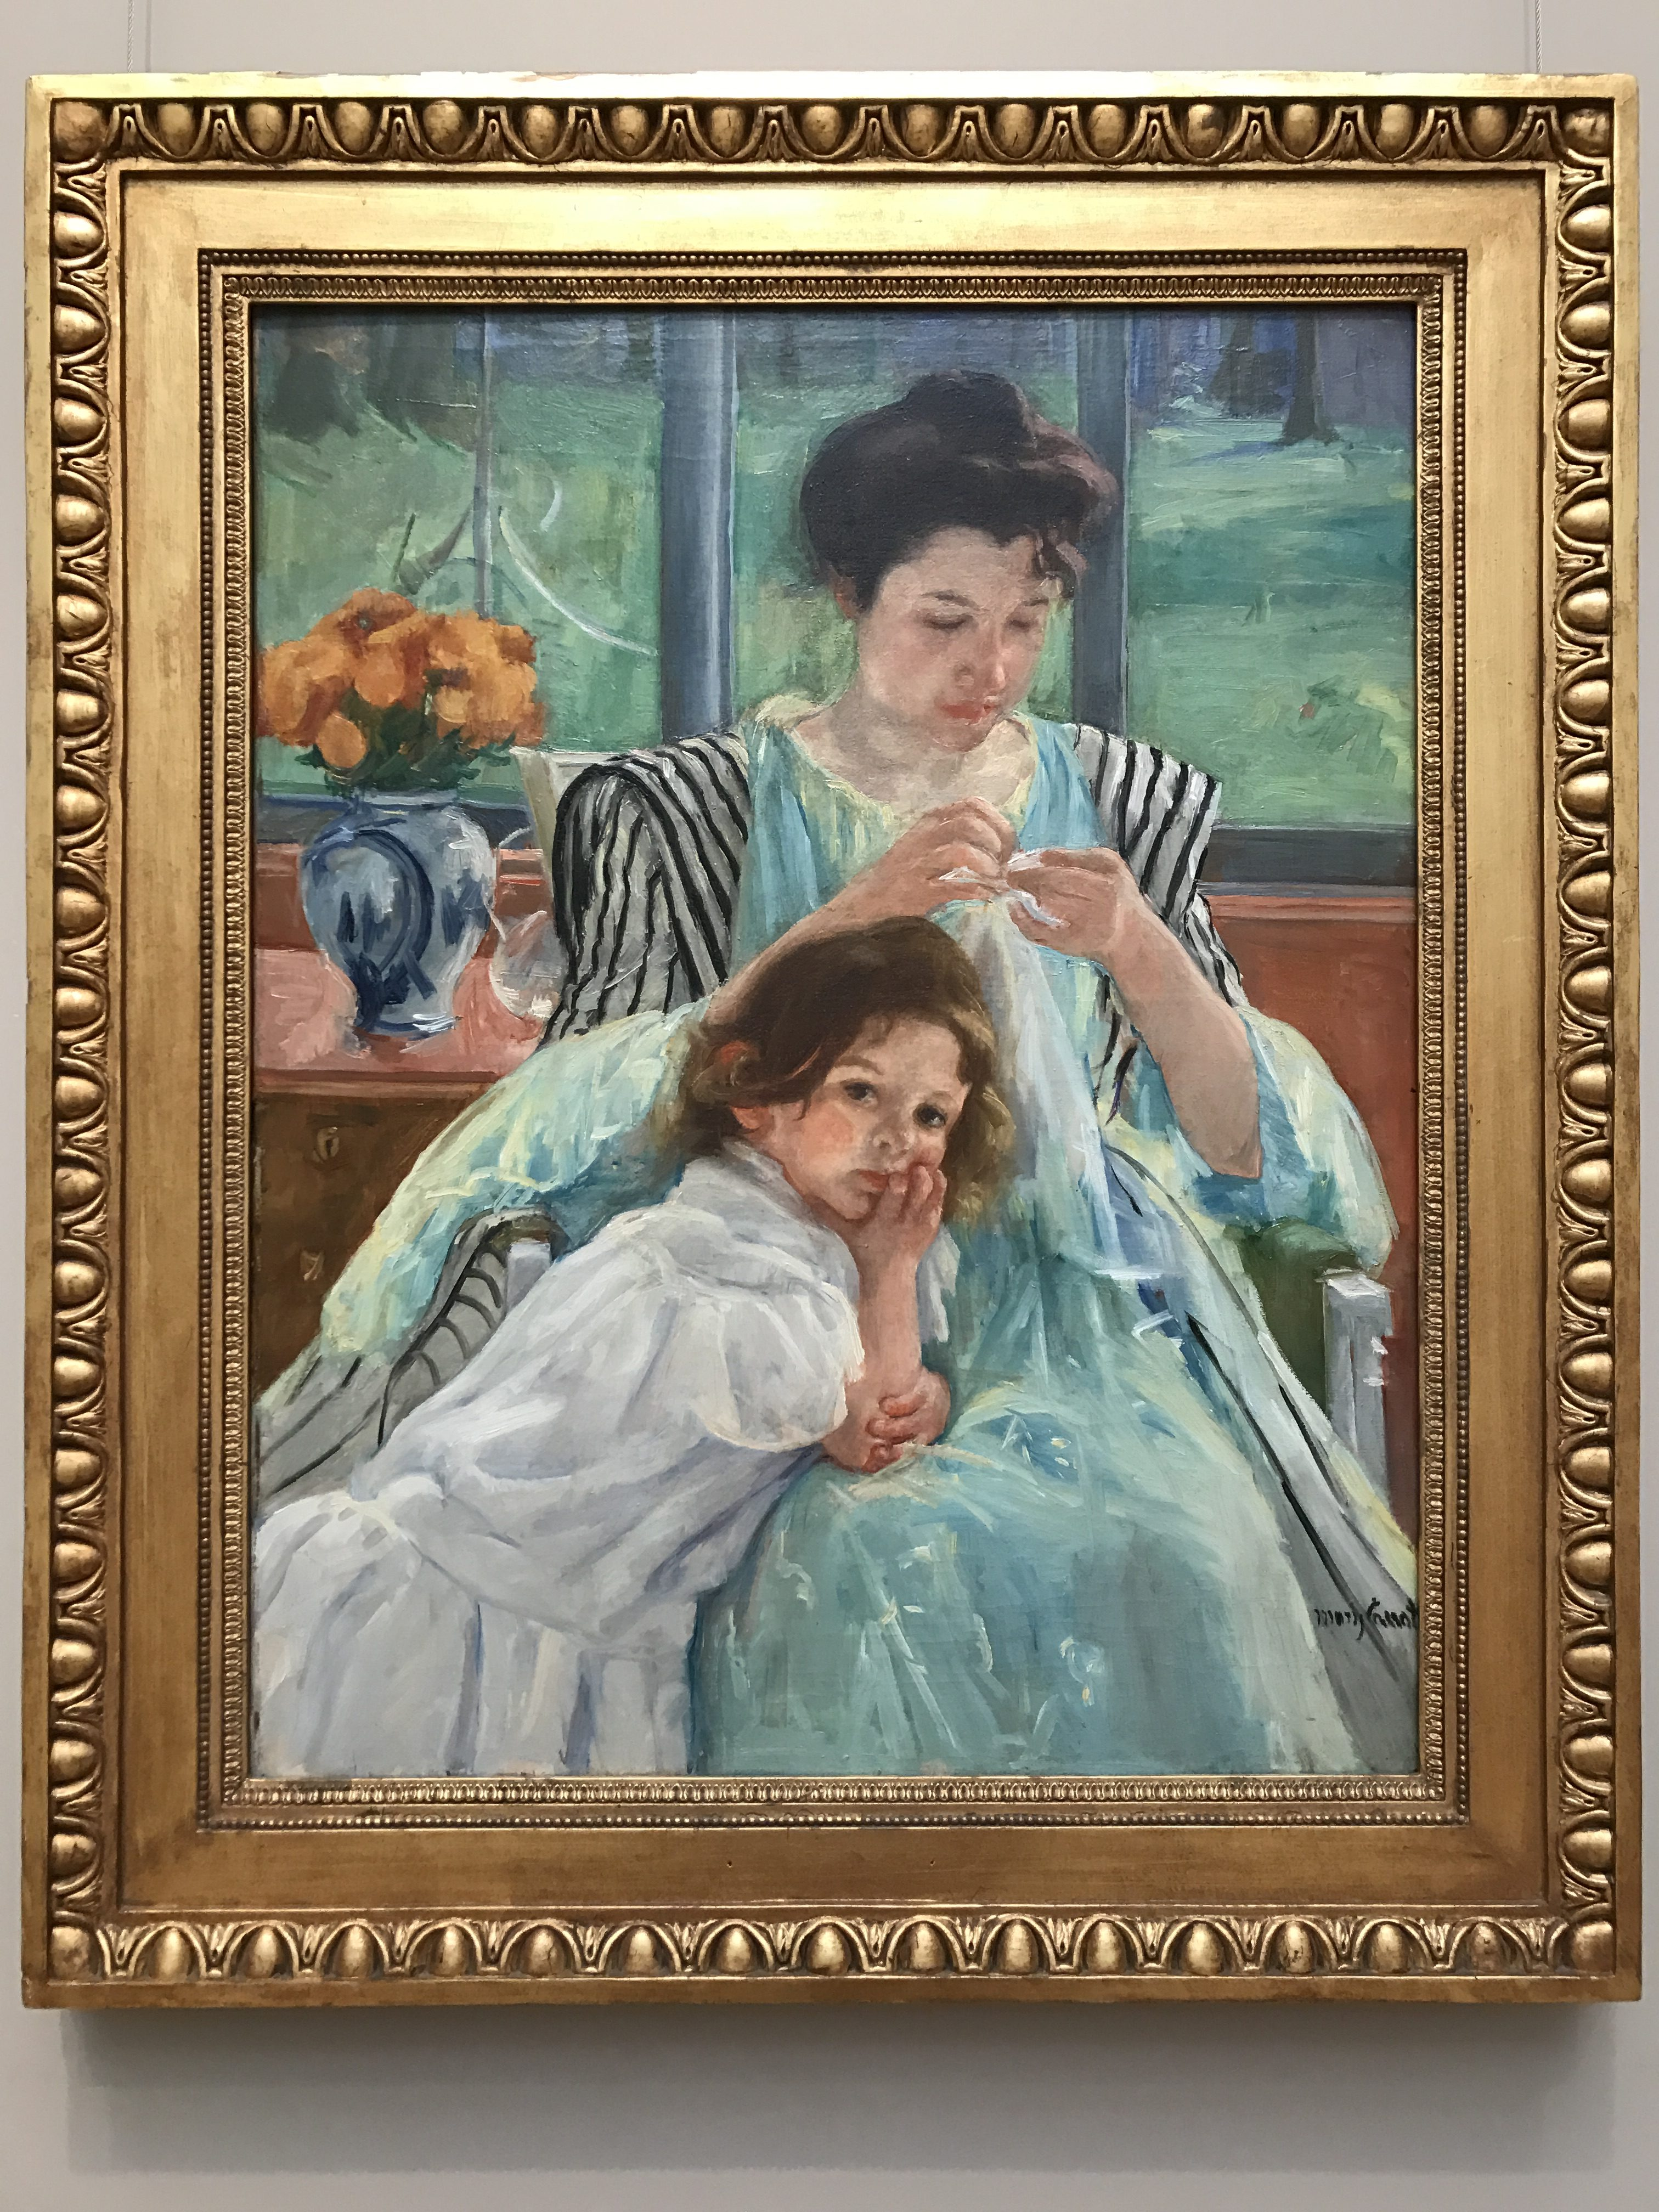 Young Mother Sewing by Mary Cassatt, 1900, my photo, framed